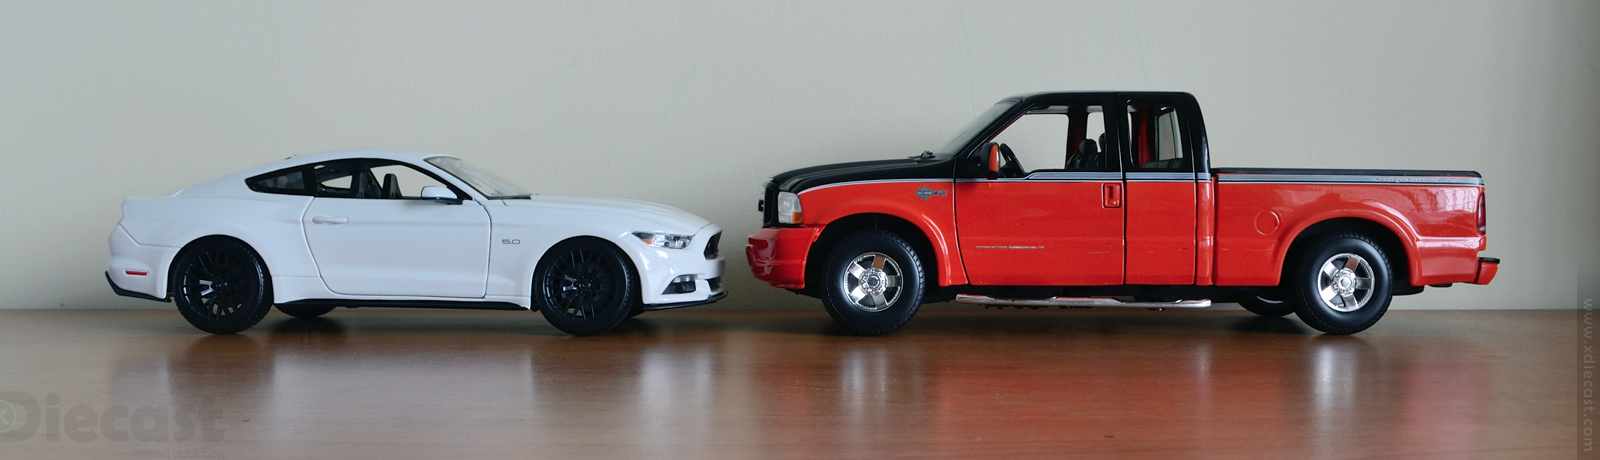 Size Comparison Ford Mustang GT500 vs Ford F350 HD